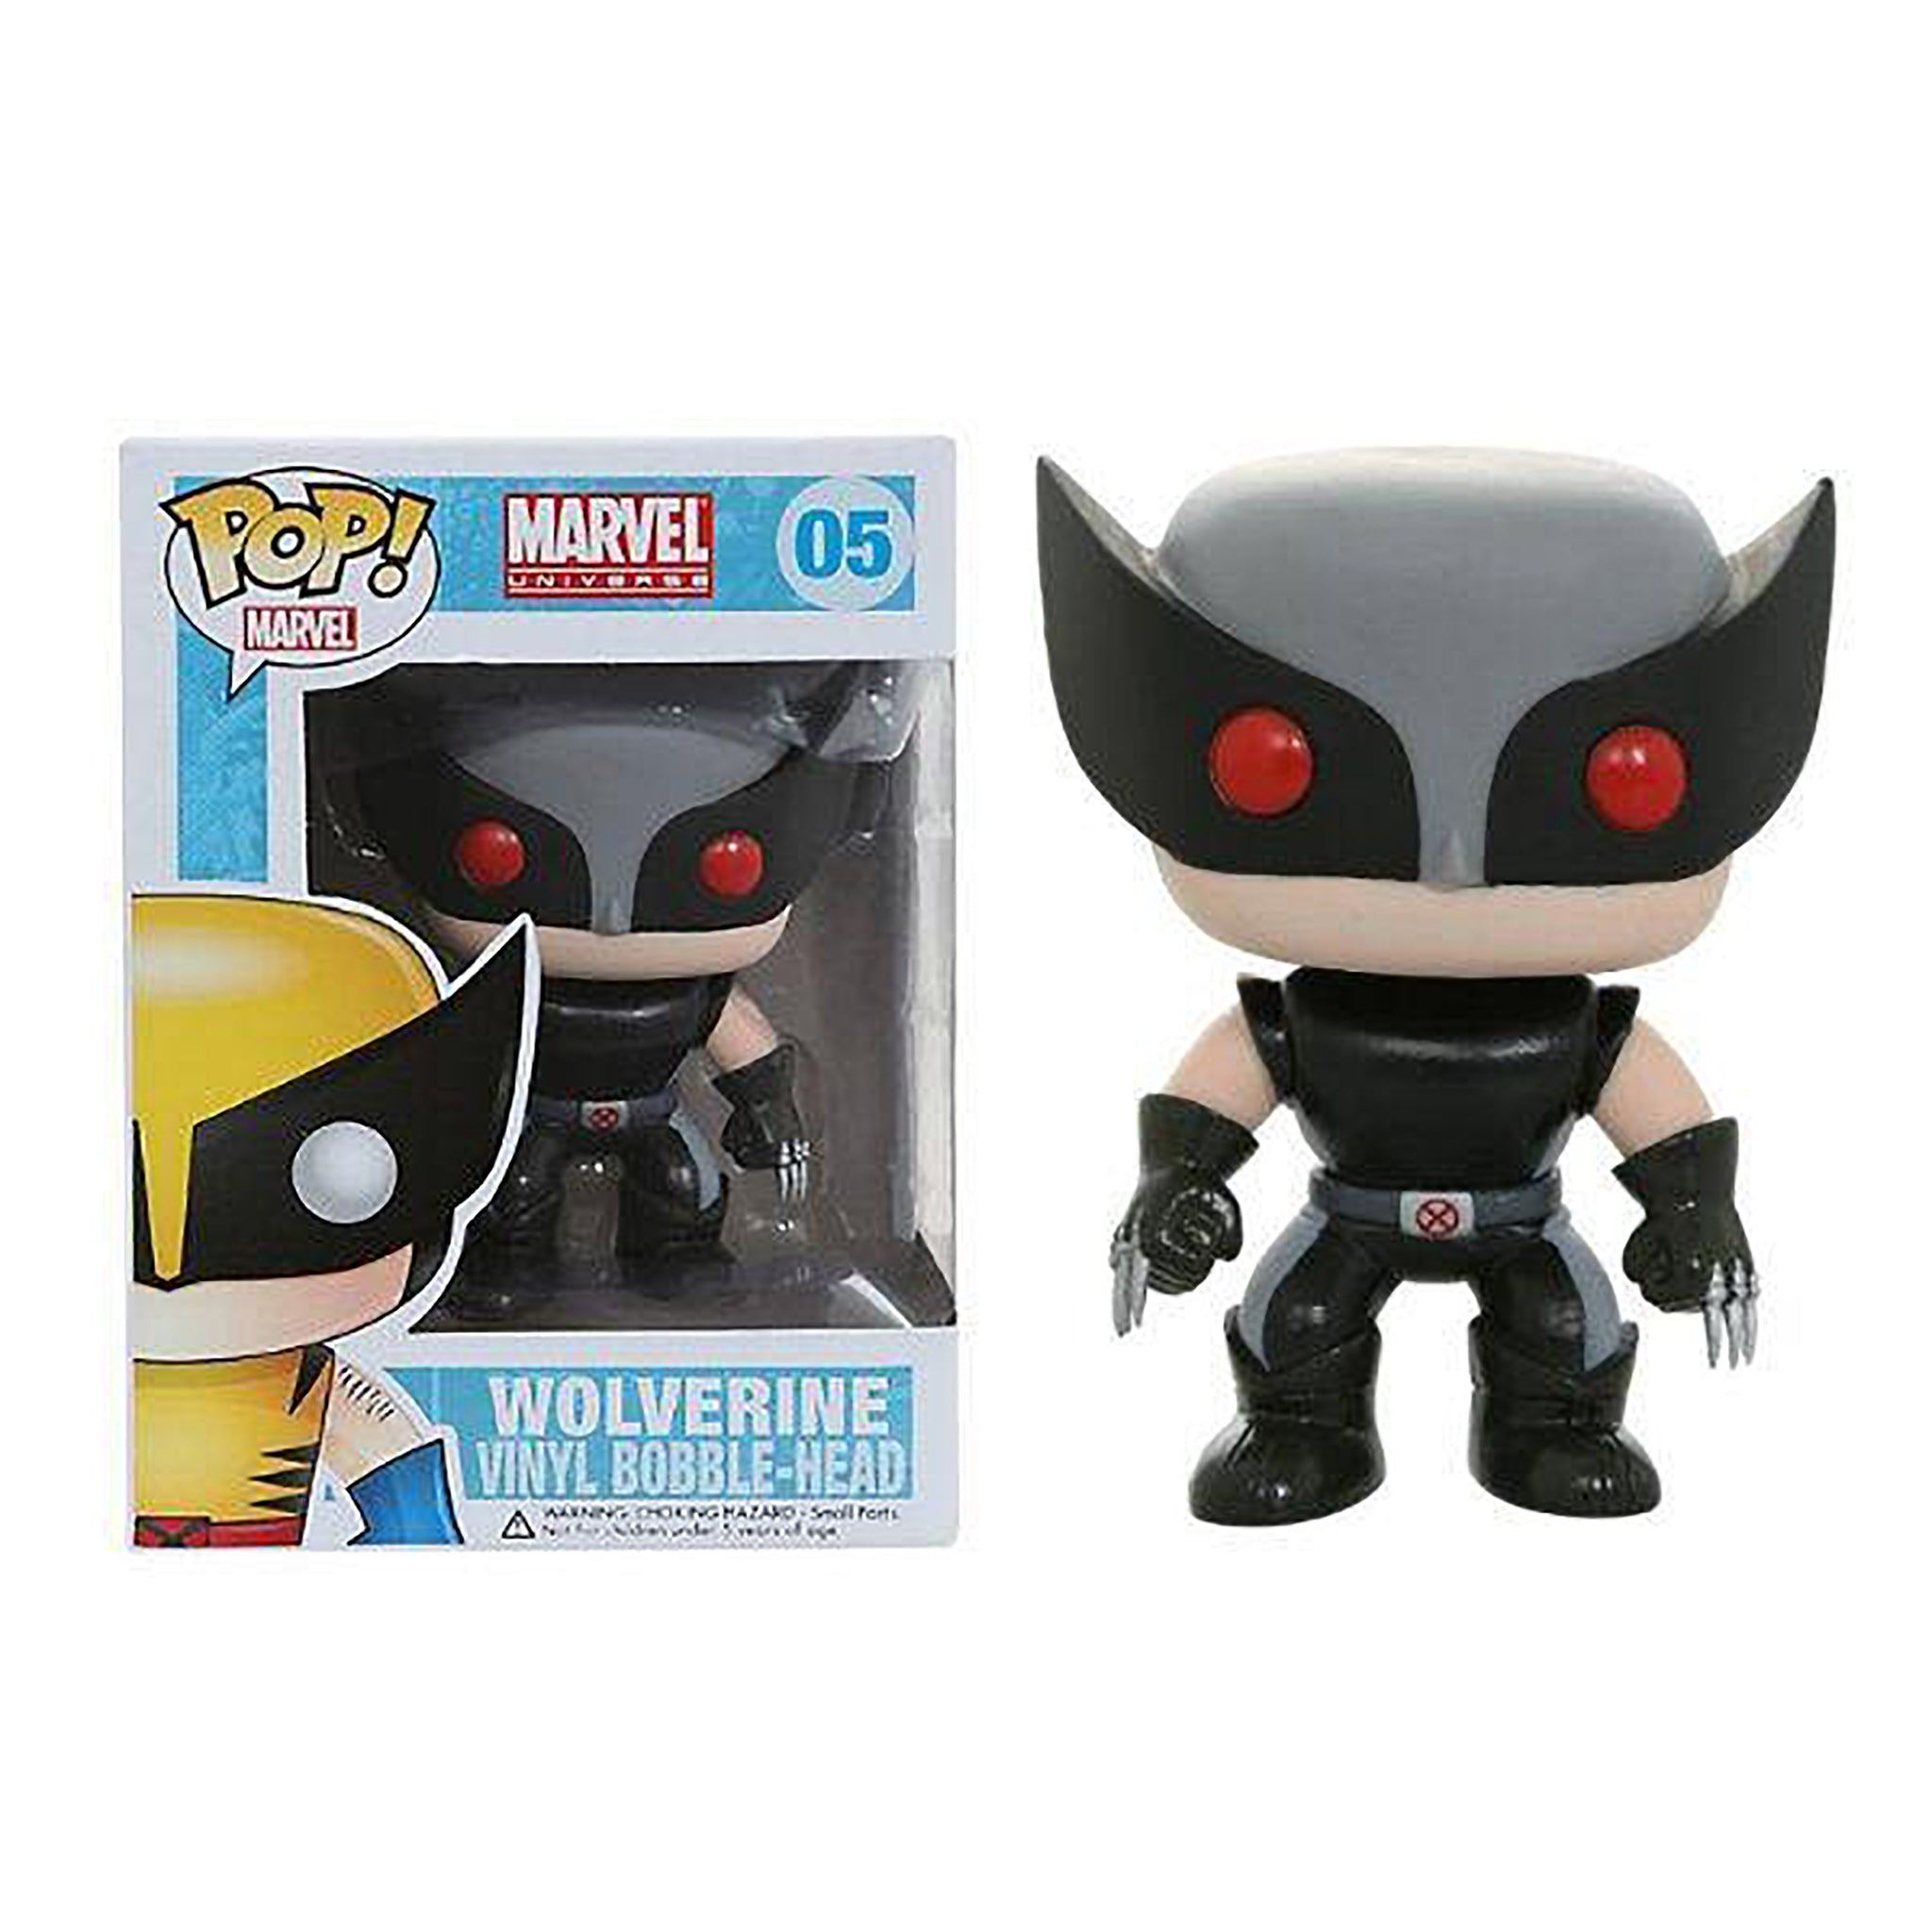 Marvel Wolverine X-Force Funko Pop! Vinyl - NEXTLEVELUK